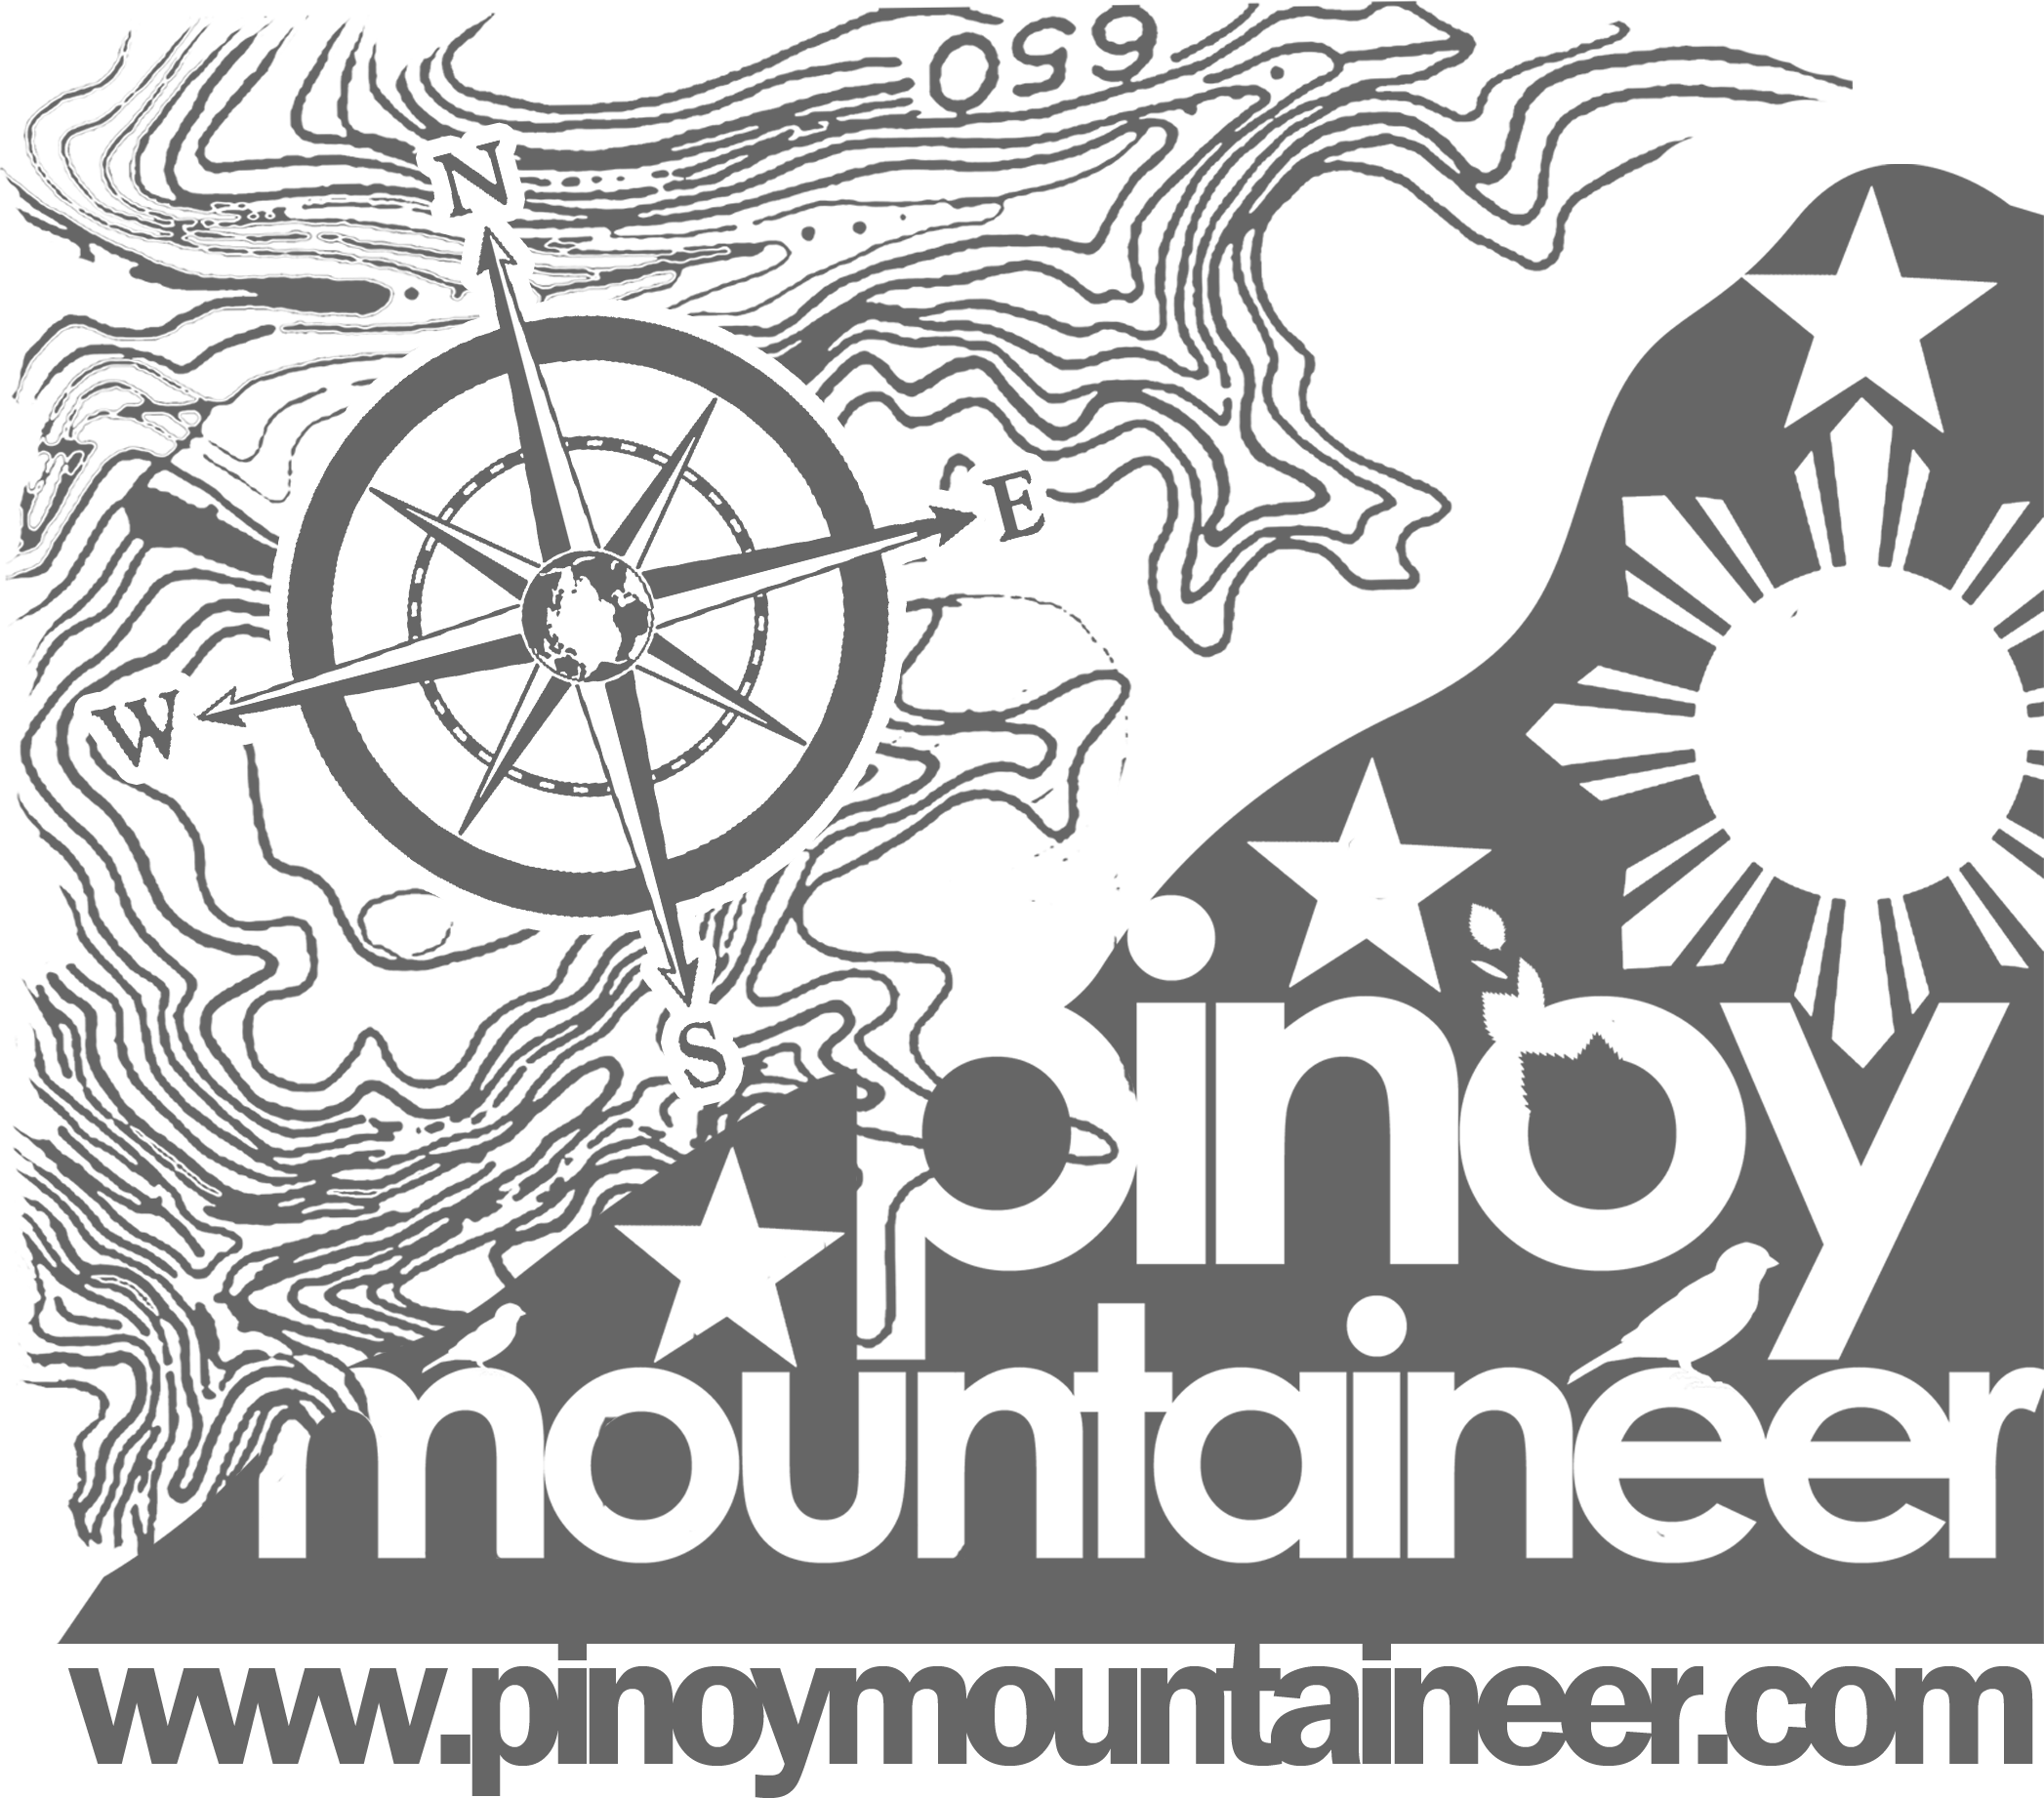 Hike clipart moutain. Difficulty archives pinoy mountaineer